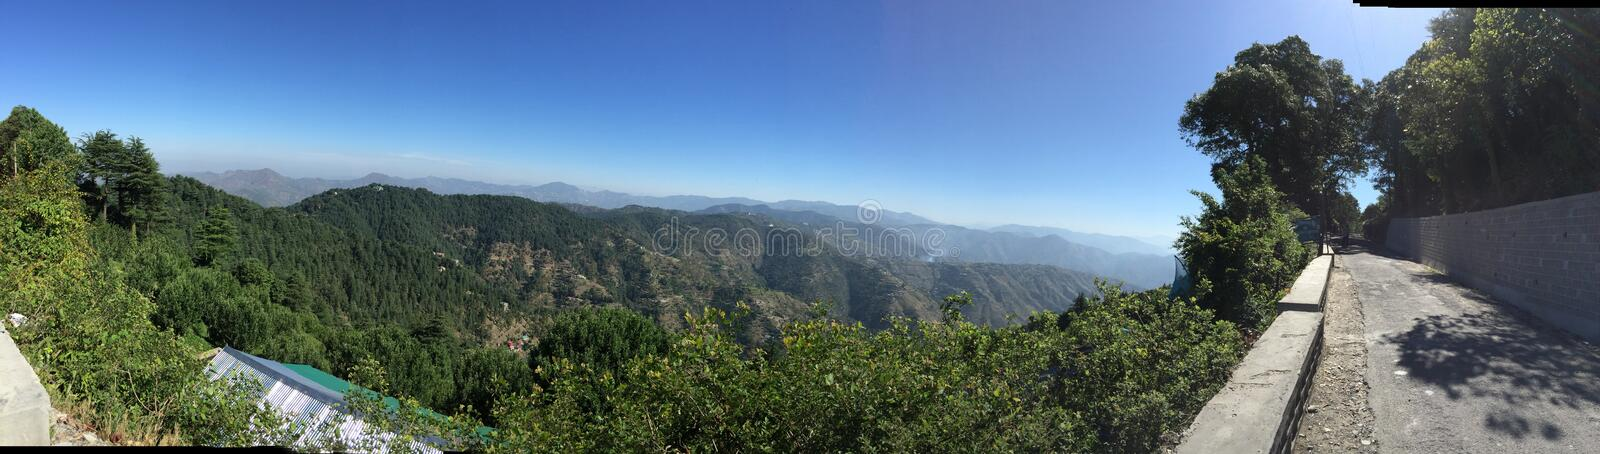 Full View from the top of Chail, Himachal Pradesh, India. A panoramic photo of the Chail, Himachal Pradesh, India. Spanning across to view is also the of Shimla' stock photography